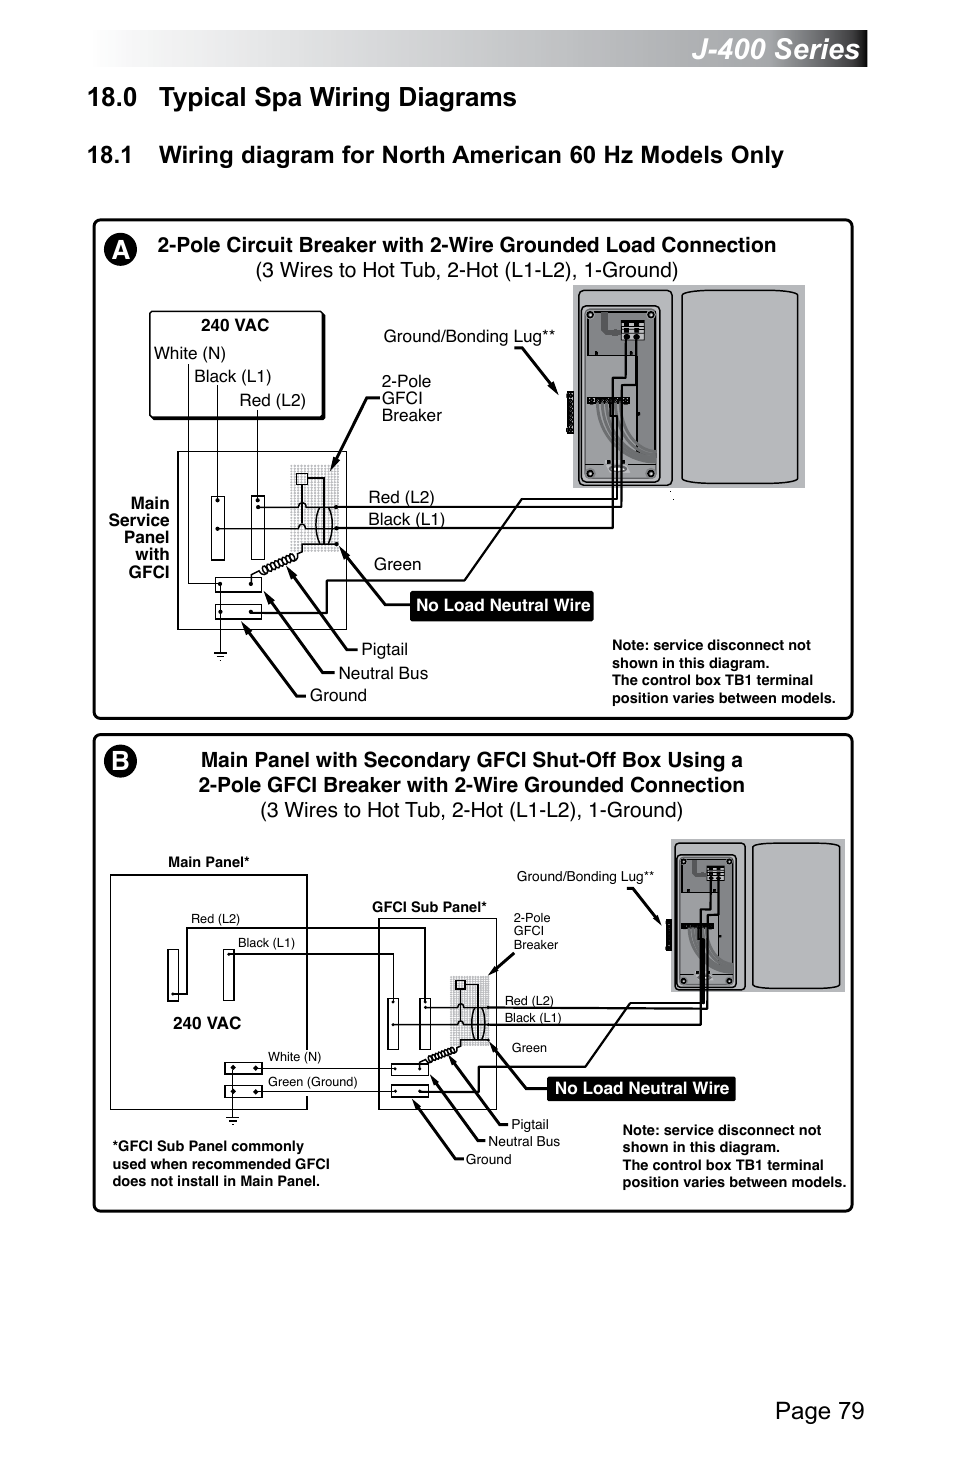 0 Typical Spa Wiring Diagrams J 400 Series Page 79 Jacuzzi Main Panel Diagram 470 User Manual 85 104